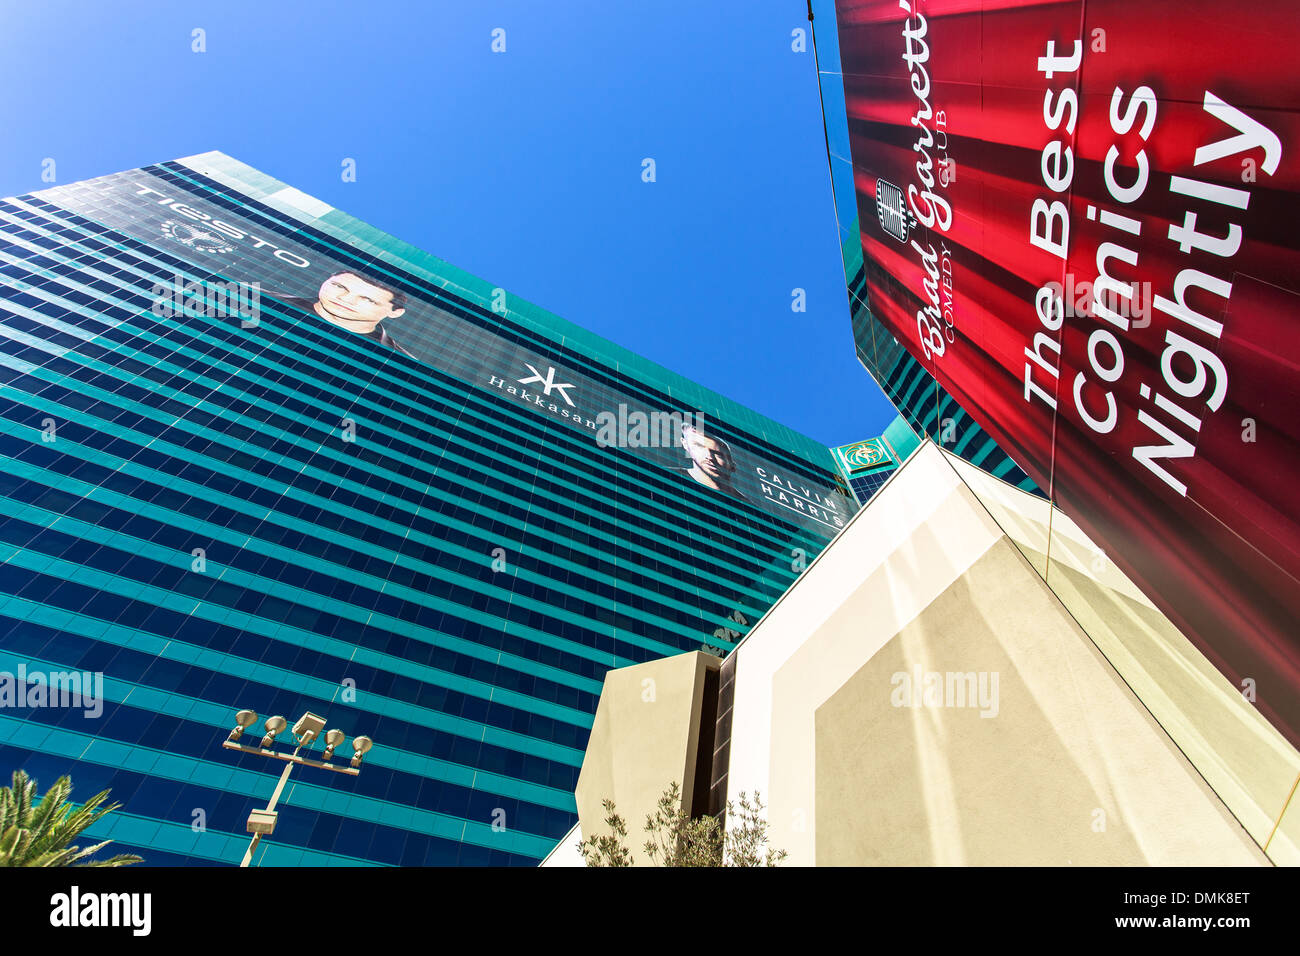 Side of MGM Grand hotel and casino in Las Vegas, Nevada - Stock Image